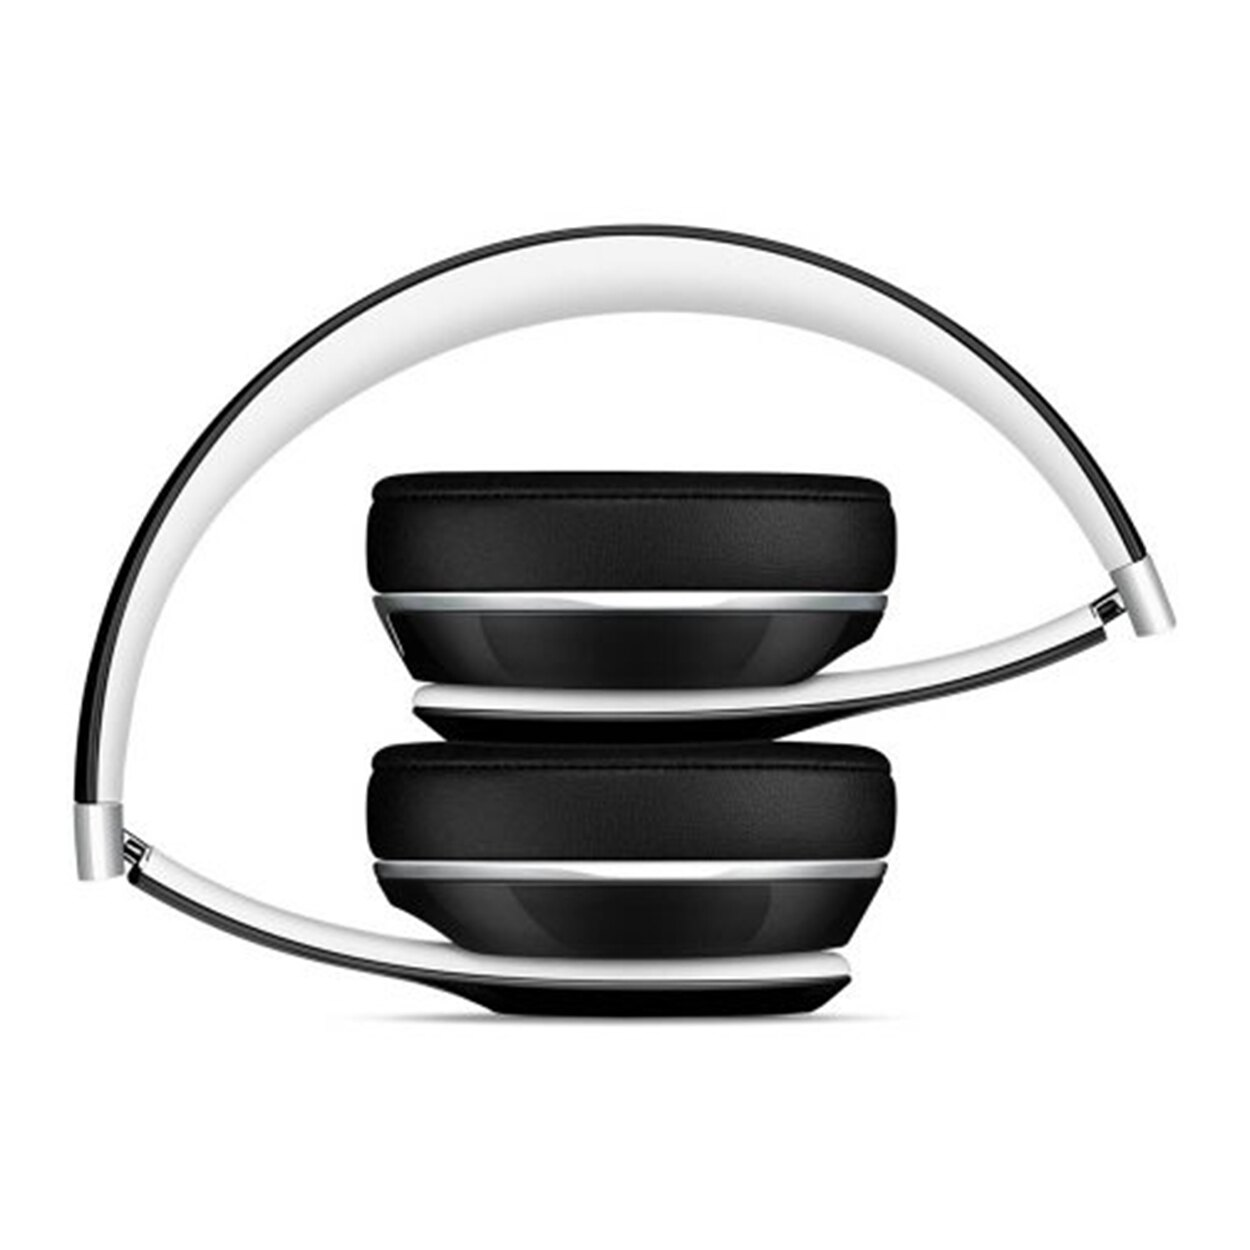 Beats by Dr. Dre Solo2 Luxe Edition On-Ear Foldable Stereo Headphones - Black 3